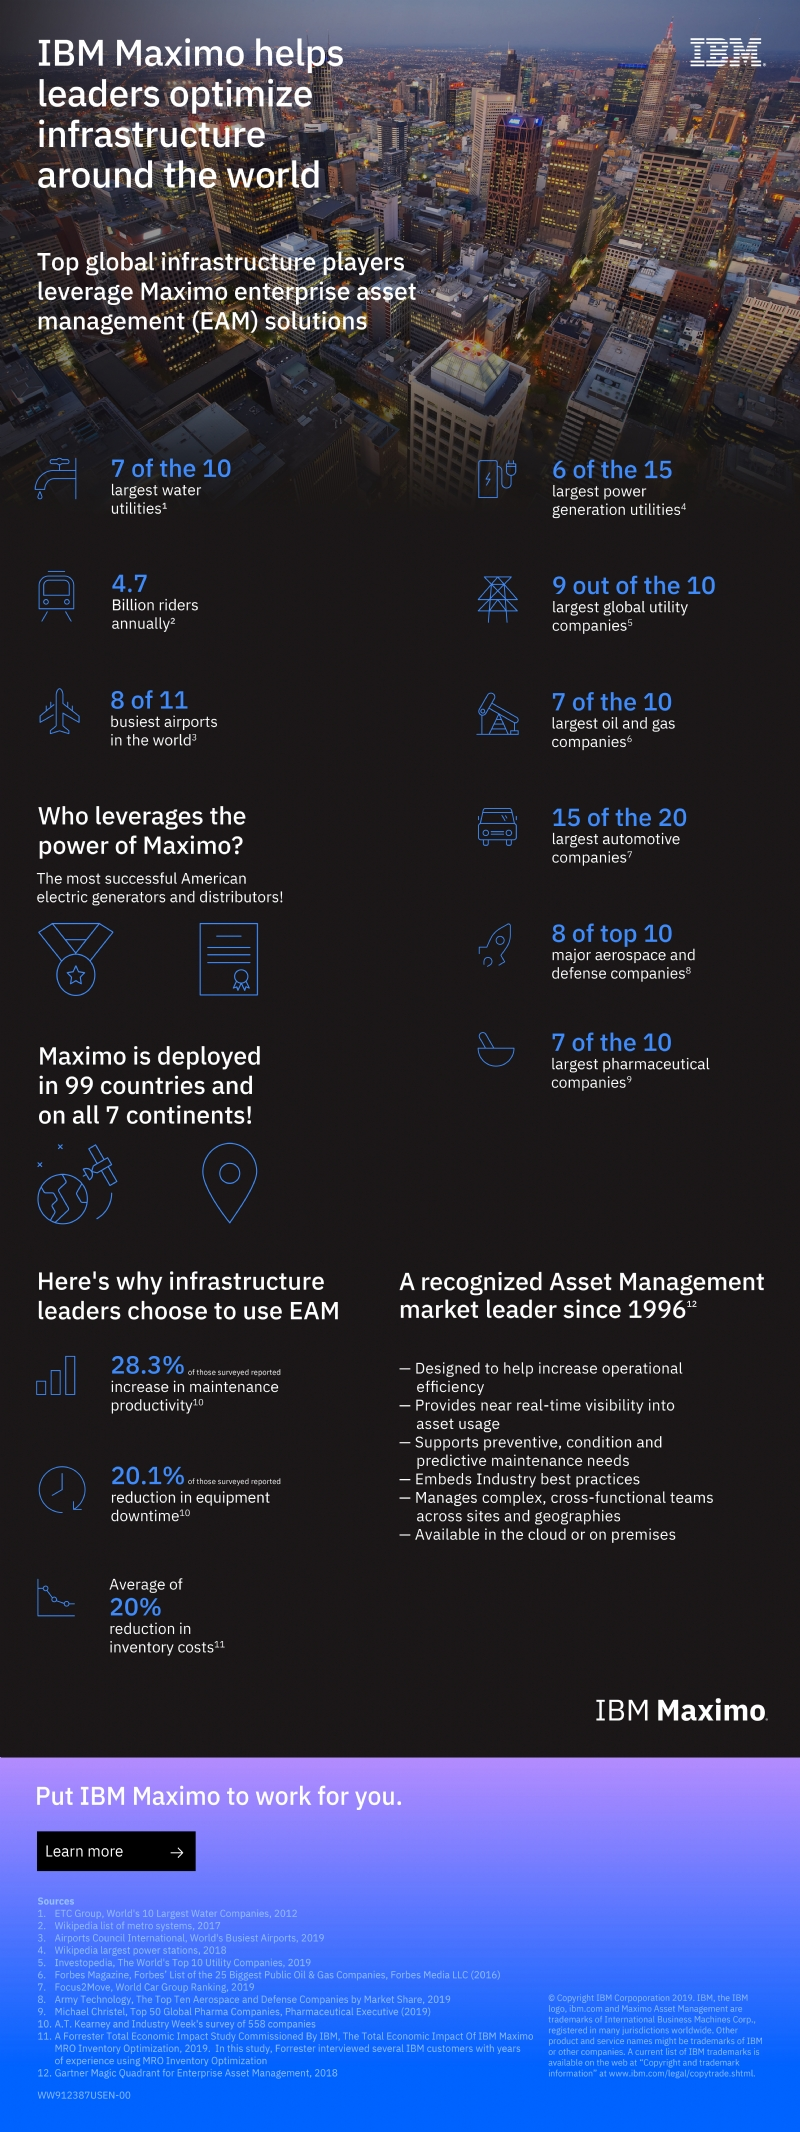 IBM Maximo helps leaders optimize infrastructure around the world